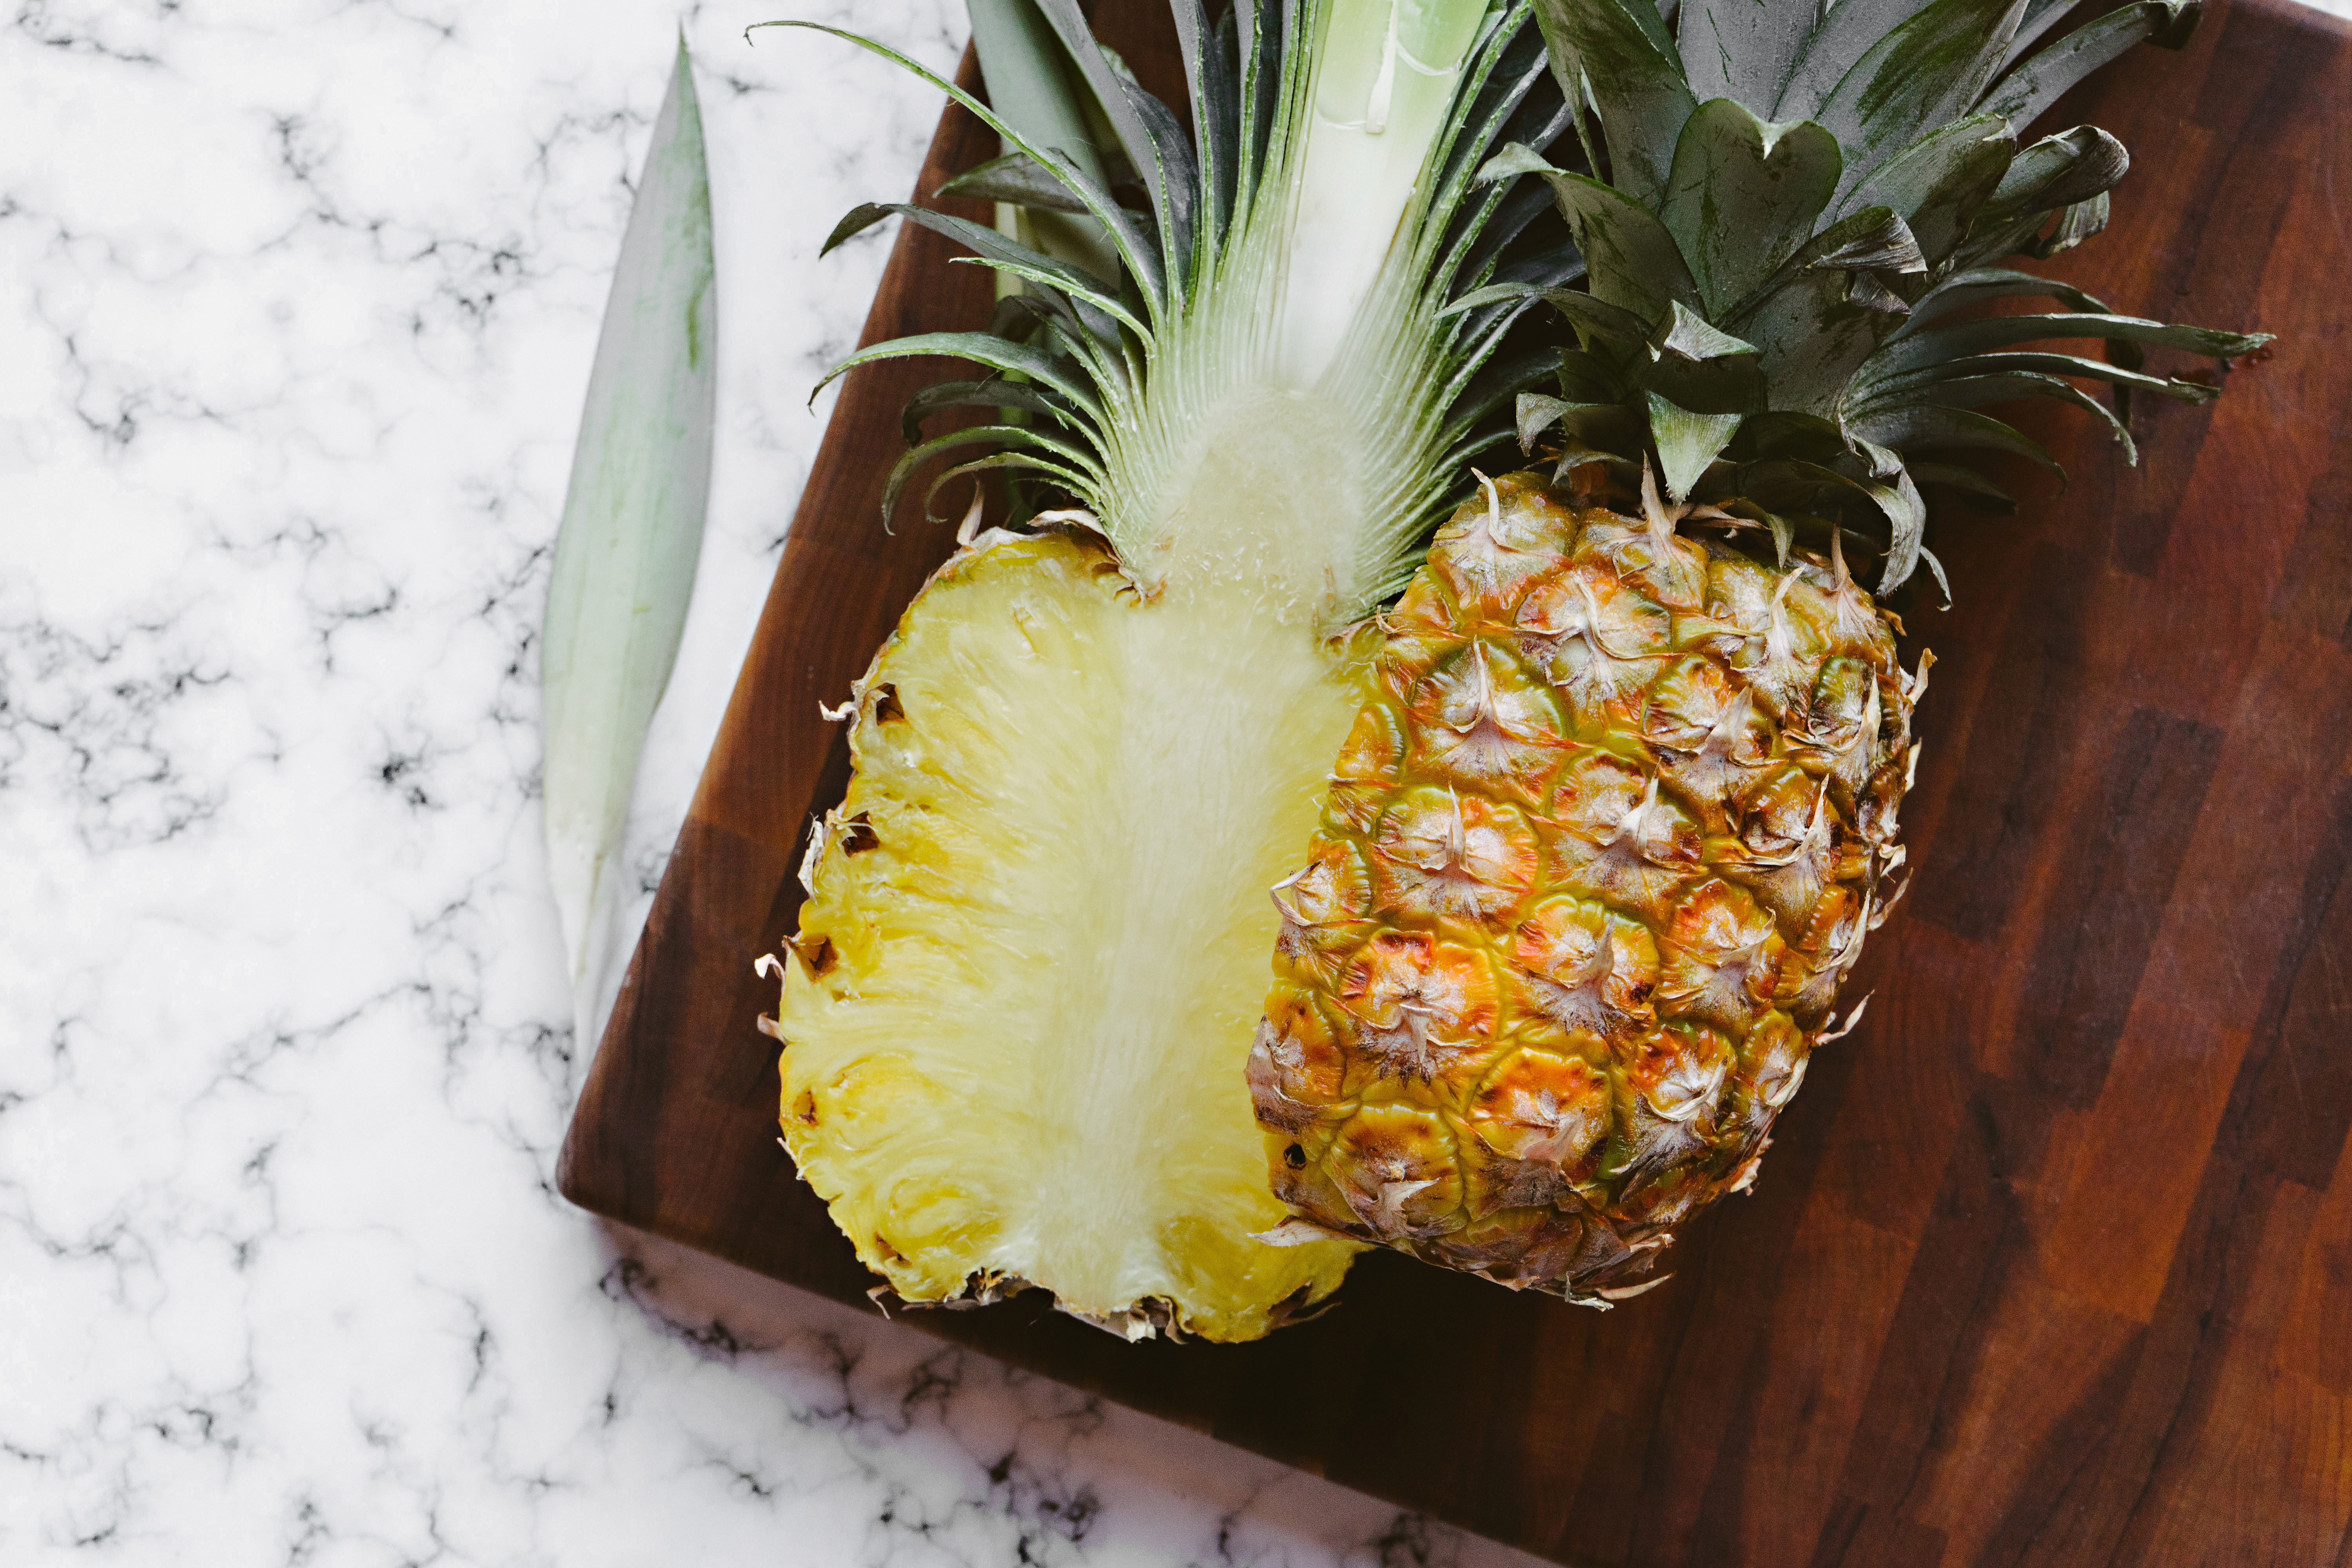 134868 download wallpaper Food, Fruit, Slice, Section, Pineapple, Vegetable screensavers and pictures for free